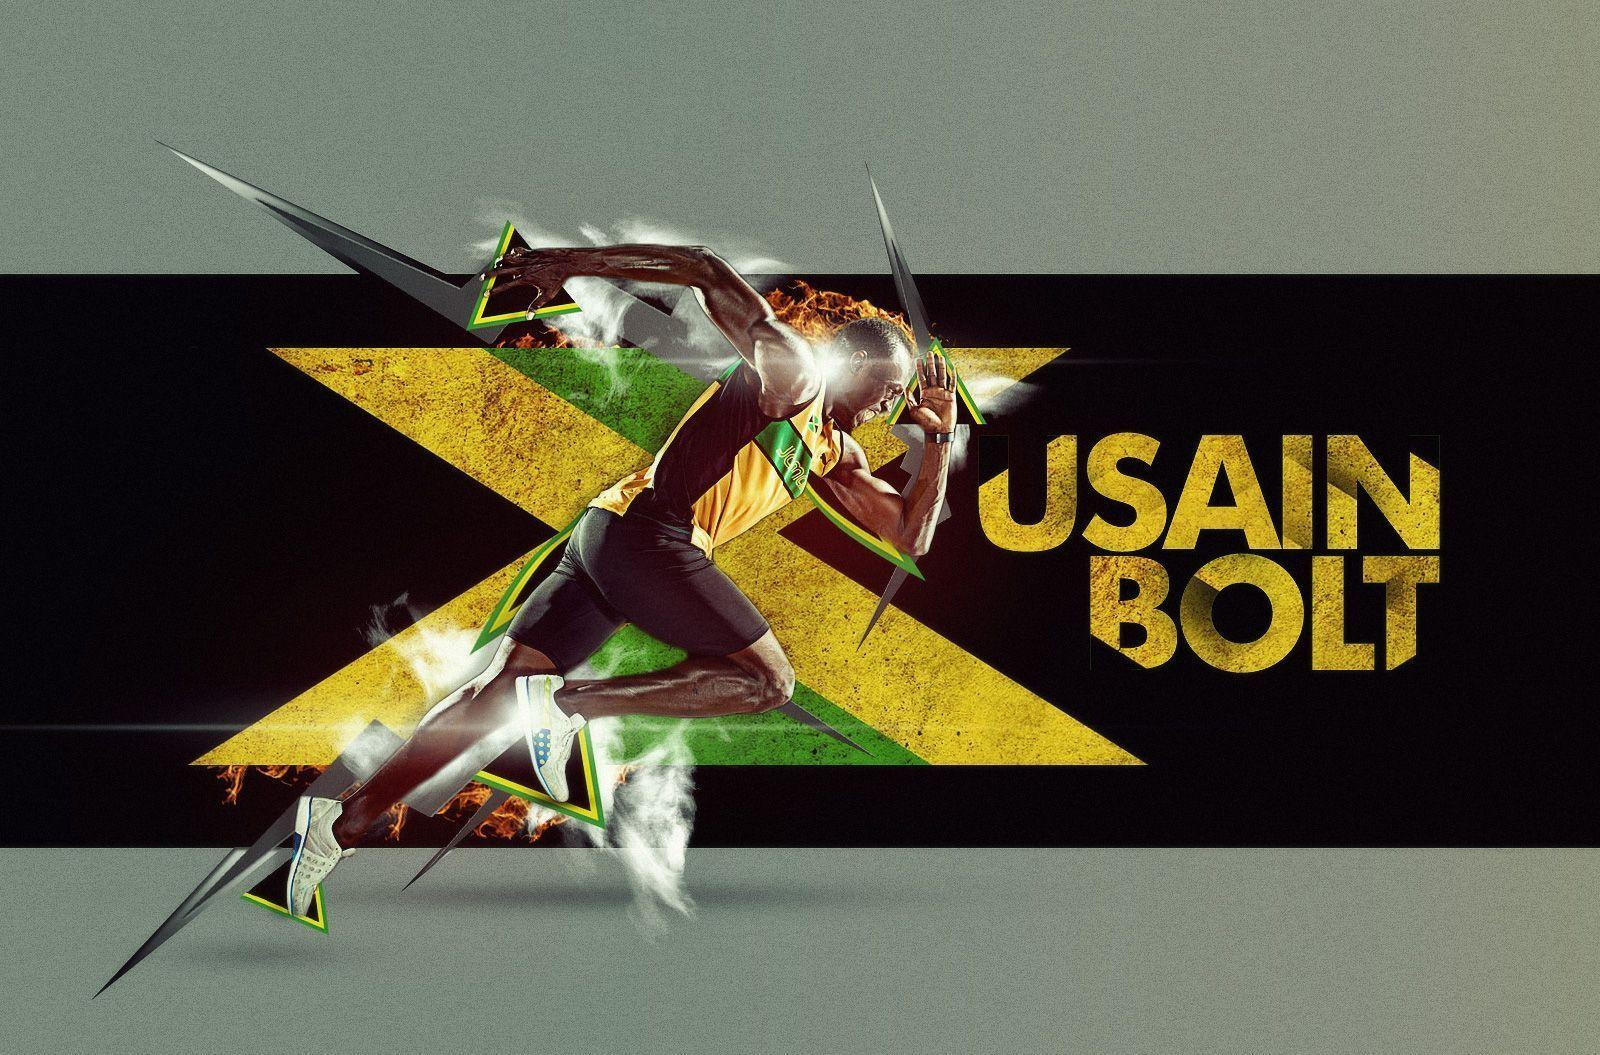 Usain Bolt Wallpaper - Viewing Gallery